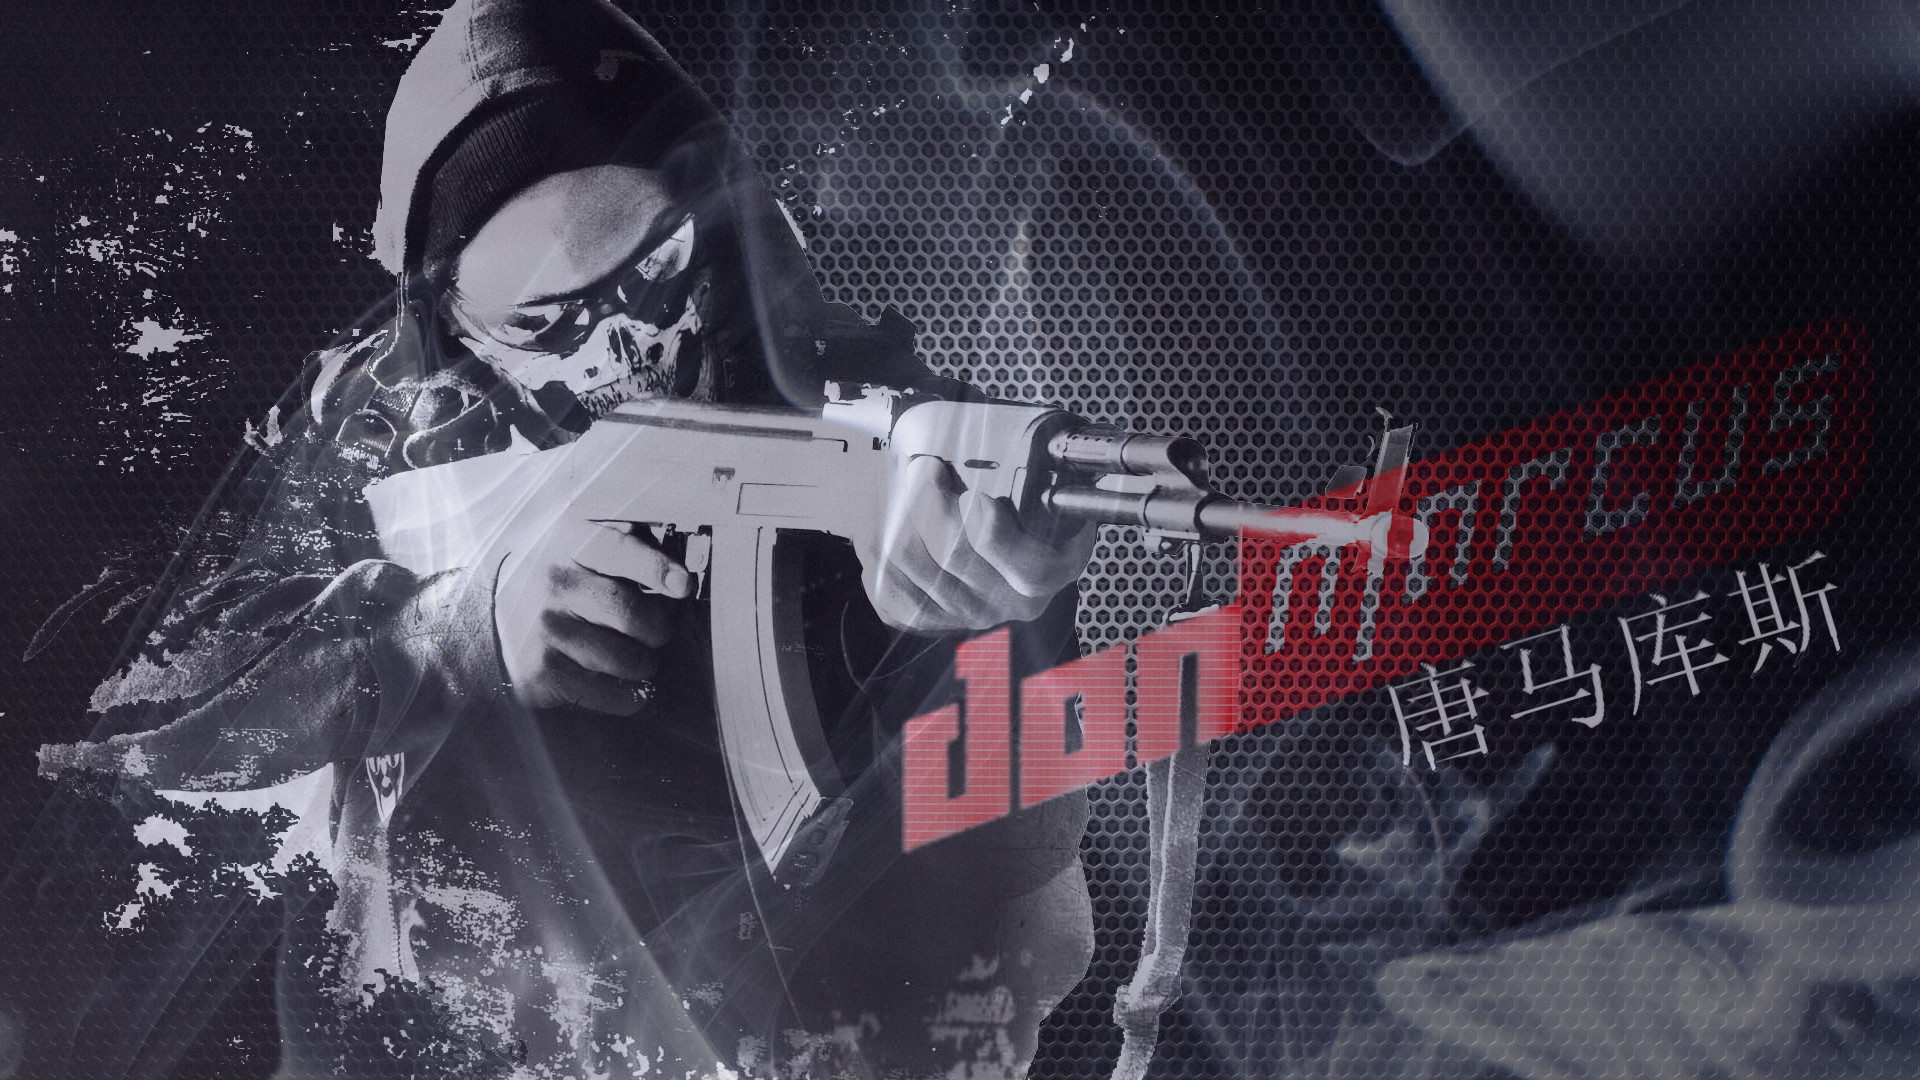 … DonMarcus CS:GO Wallpaper by Donnesmarcus